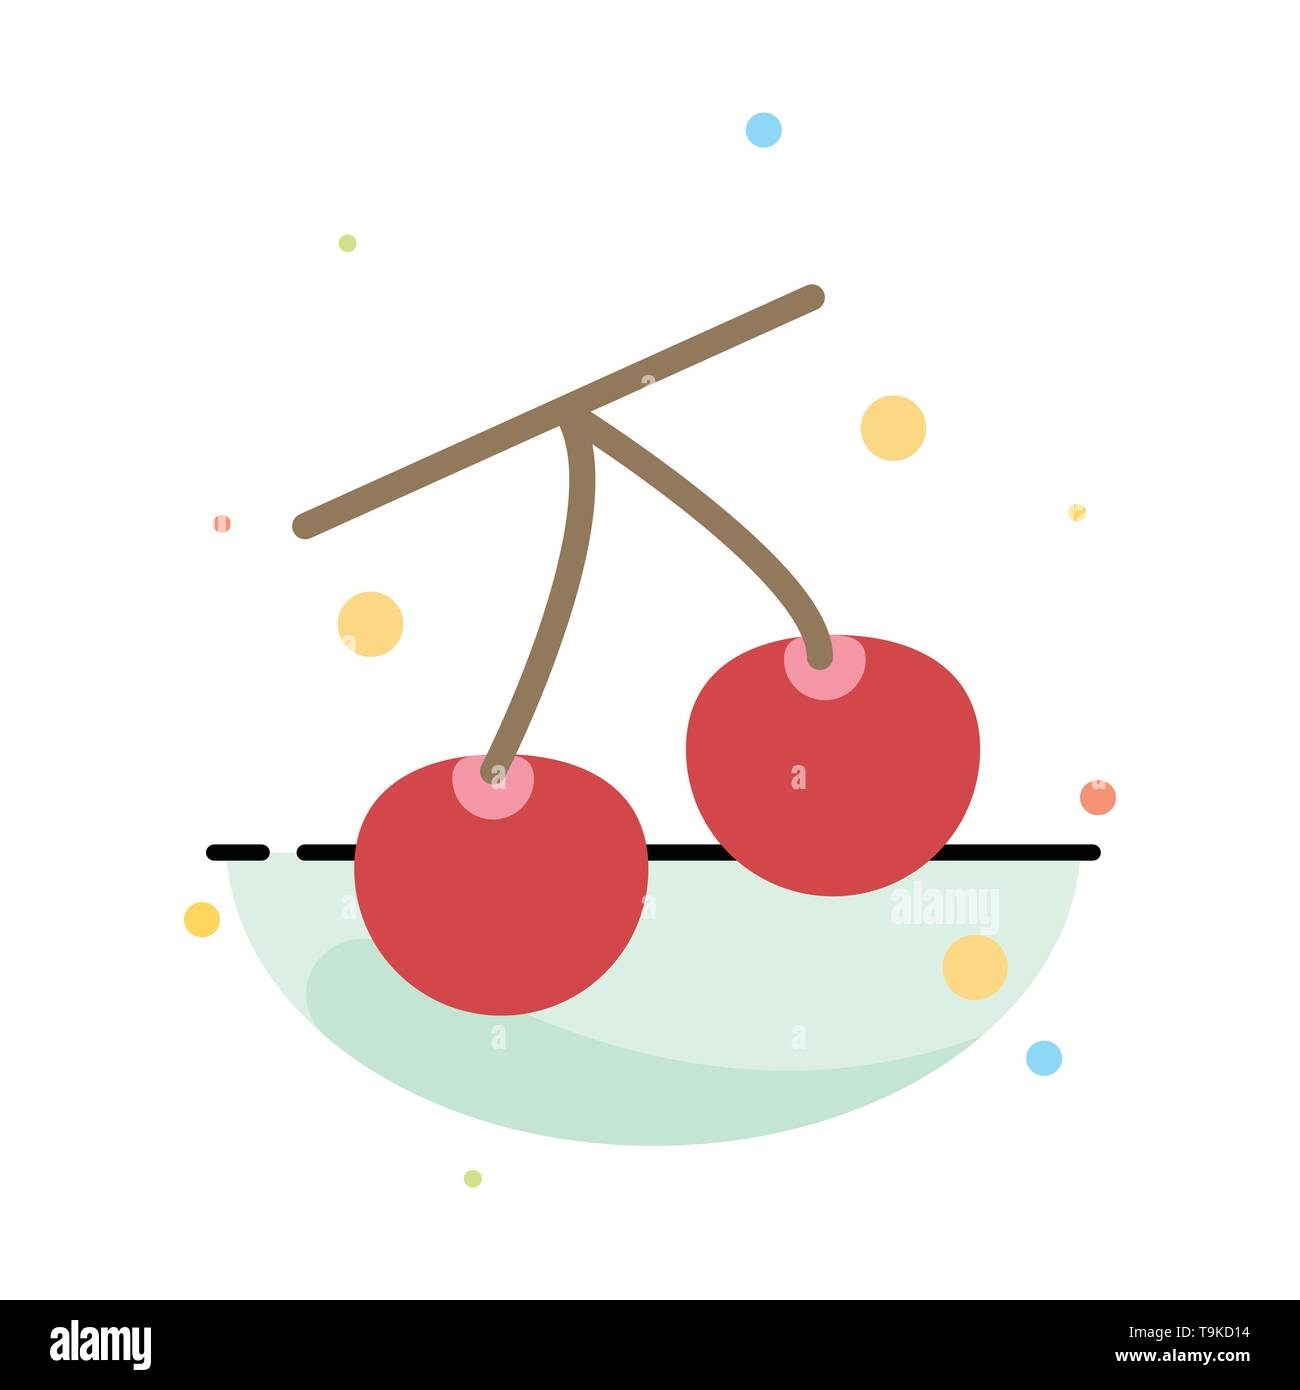 Cherry, Fruit, Healthy, Easter Abstract Flat Color Icon Template - Stock Image